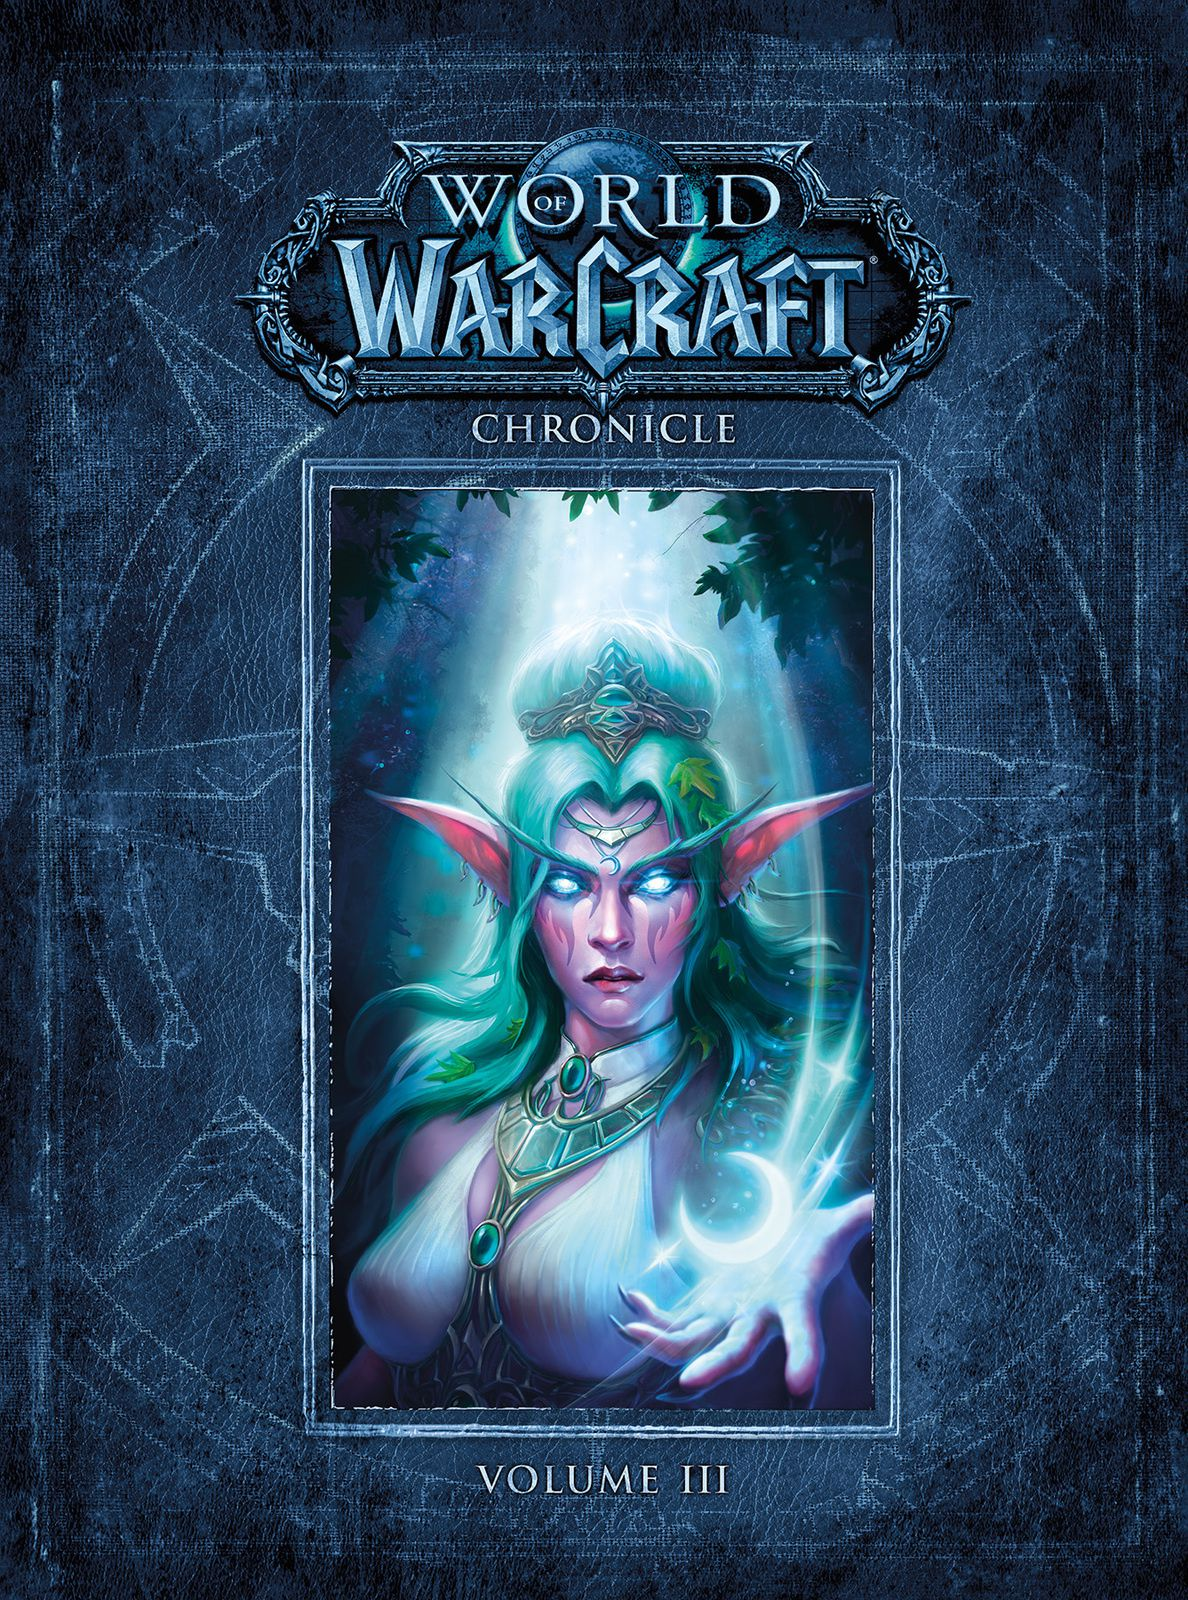 [REVUE LIVRE GAMING] WORLD OF WARCRAFT CHRONIQUES VOLUME III chez PANINI BOOKS